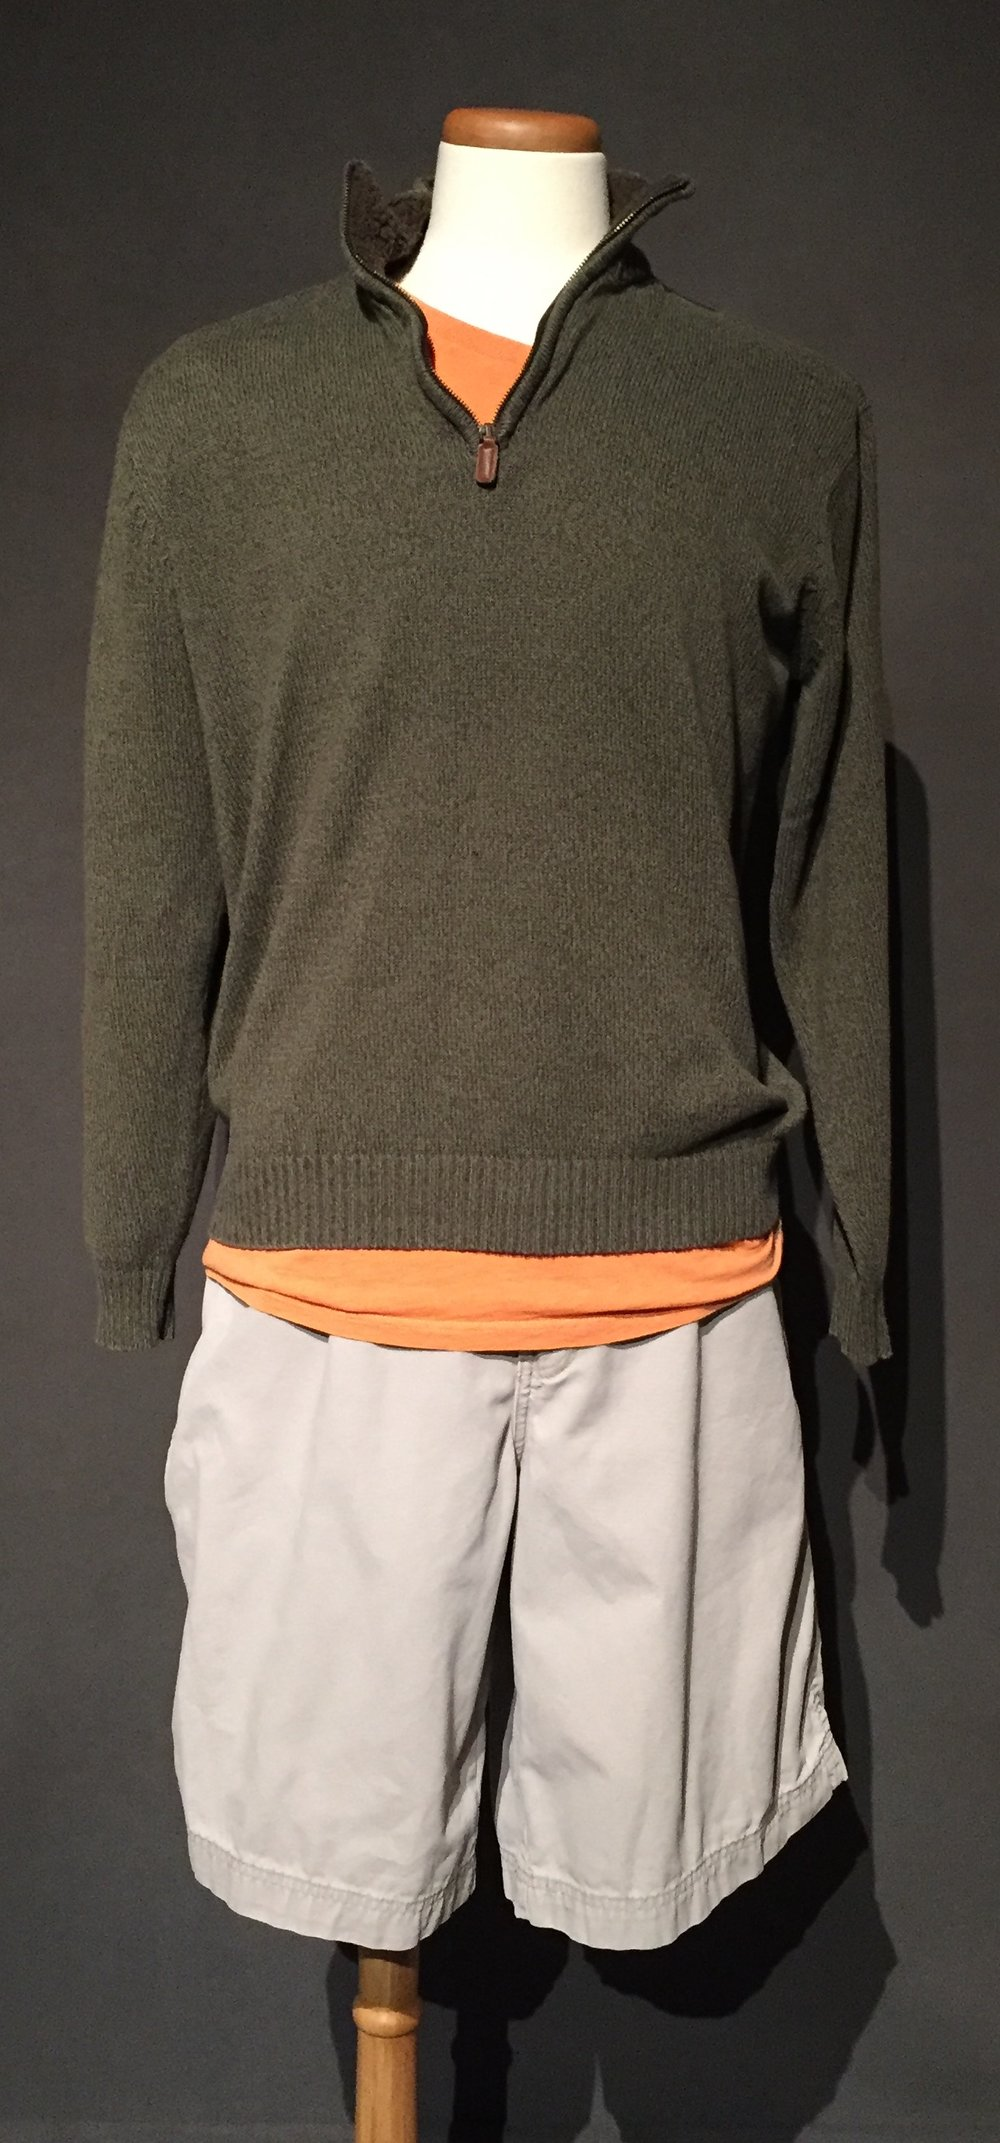 """- Green sweater, orange t-shirt, tan cargo shortsOwner – Kai, gay, woman, 43, lives in Iowac. 2010s""""I prefer men's [clothes] you know, I'm attracted to most things that are men's styles.""""""""Anything cargo I'm all in, I just think they're great, how could you ever have too many pockets?""""""""Because its an automatic assumption [that she's gay], and because I look the way that I do [masculine] I don't always get to make that choice [to disclose her sexuality or not], and there are days when I don't want to carry the sword. There are days where, I don't want to have to say I'm gay or I'm married to a woman, or there's days where I'm just tired and I just want to be able to easily move through this interaction and move on and I can't because of the way I look. That's probably one of the more difficult aspects I think. I'm coming out all of the time because of the way I look whether I want to or not."""" -personal interview with Kai, October 17th, 2017"""